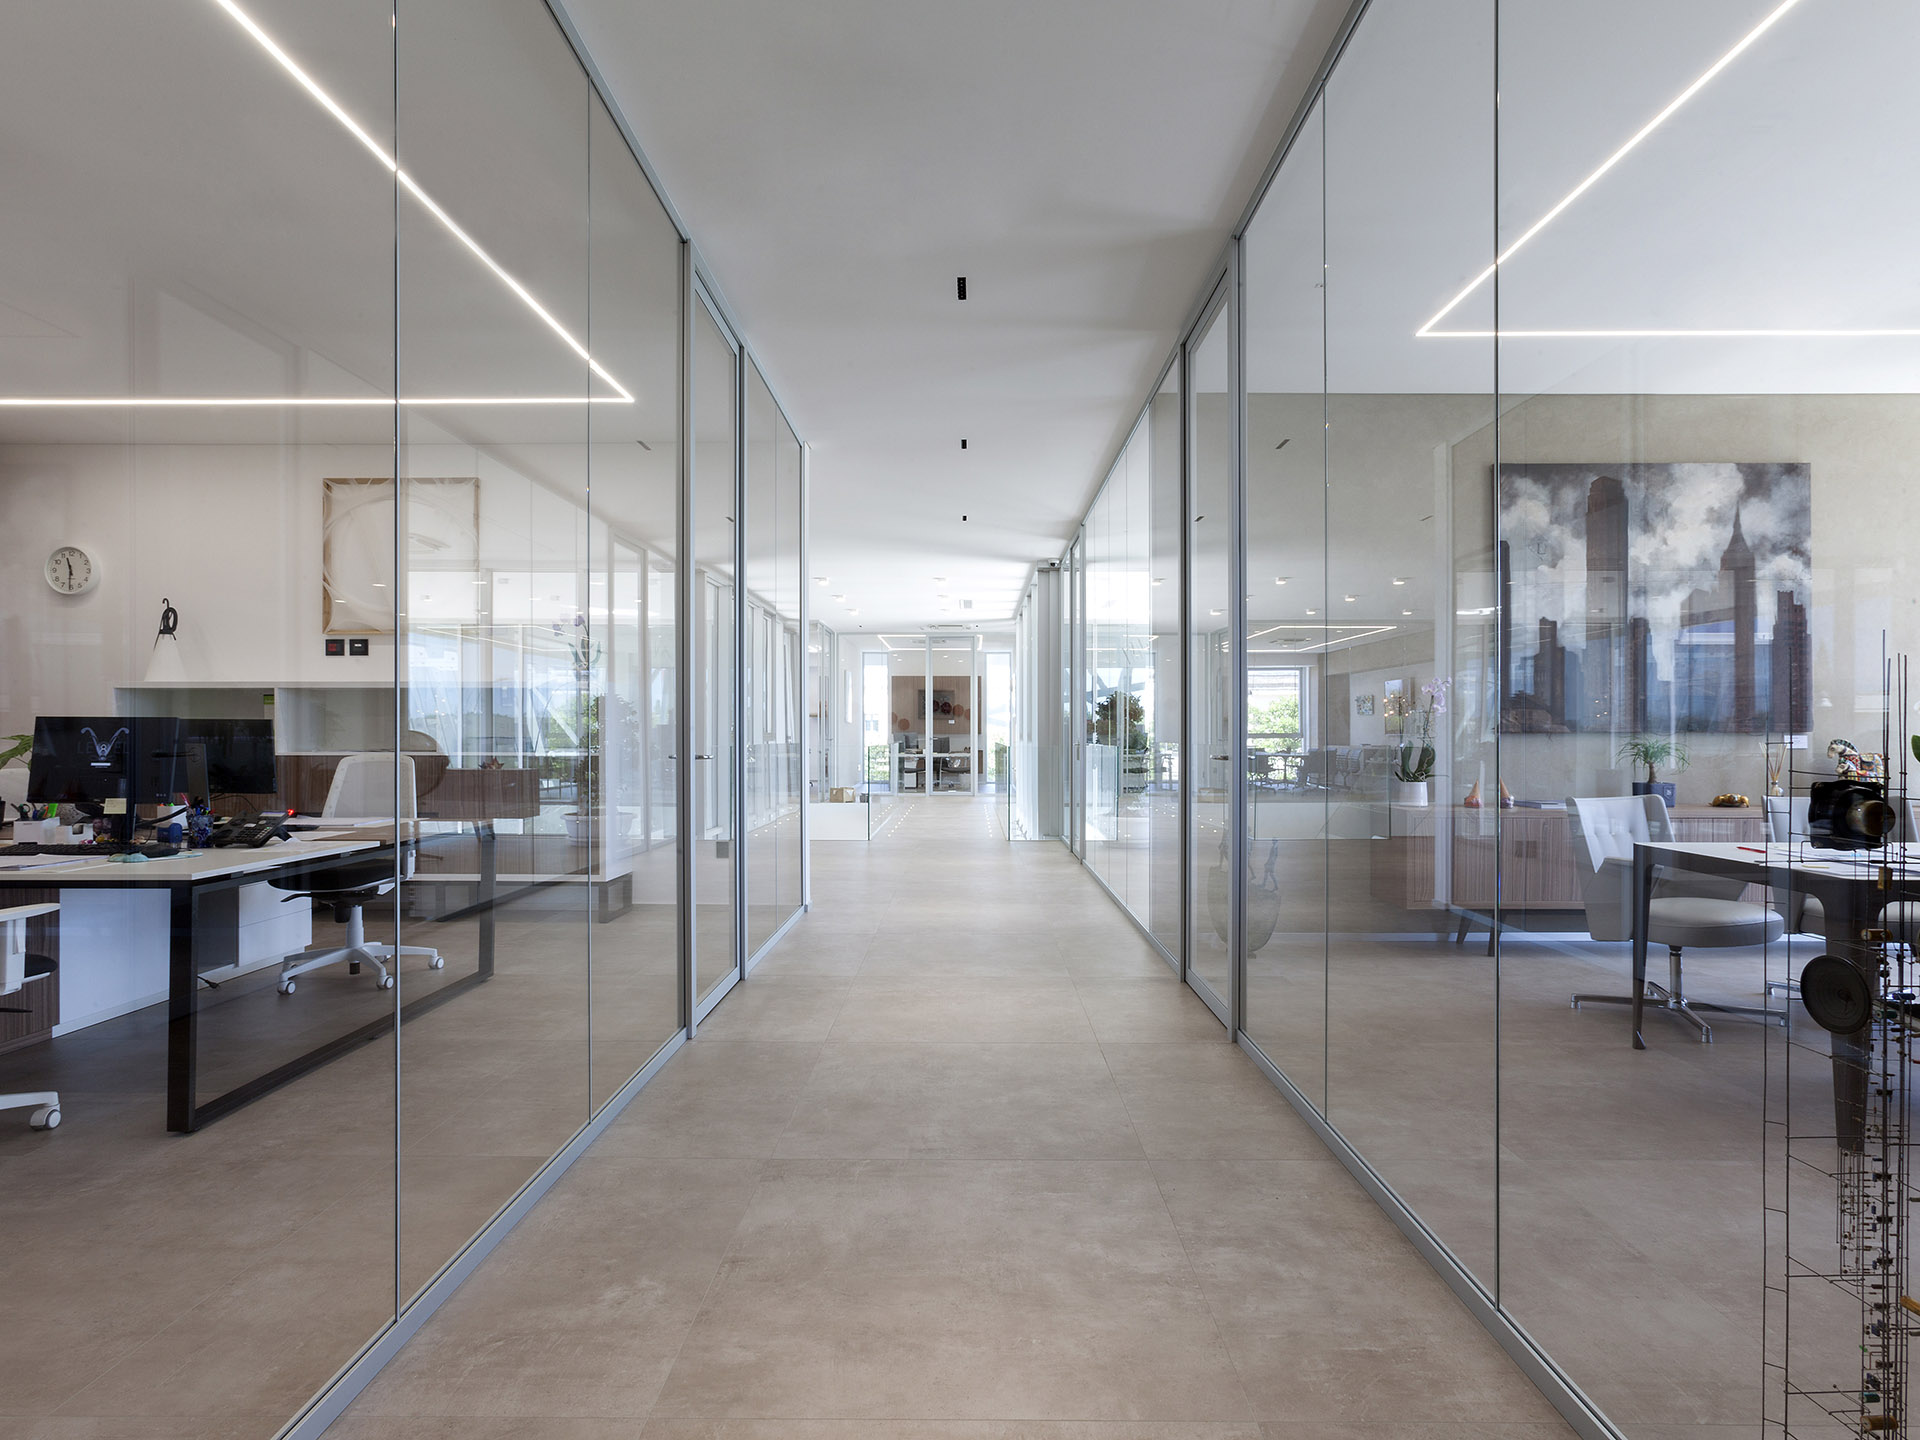 Office interior with transparent partitions